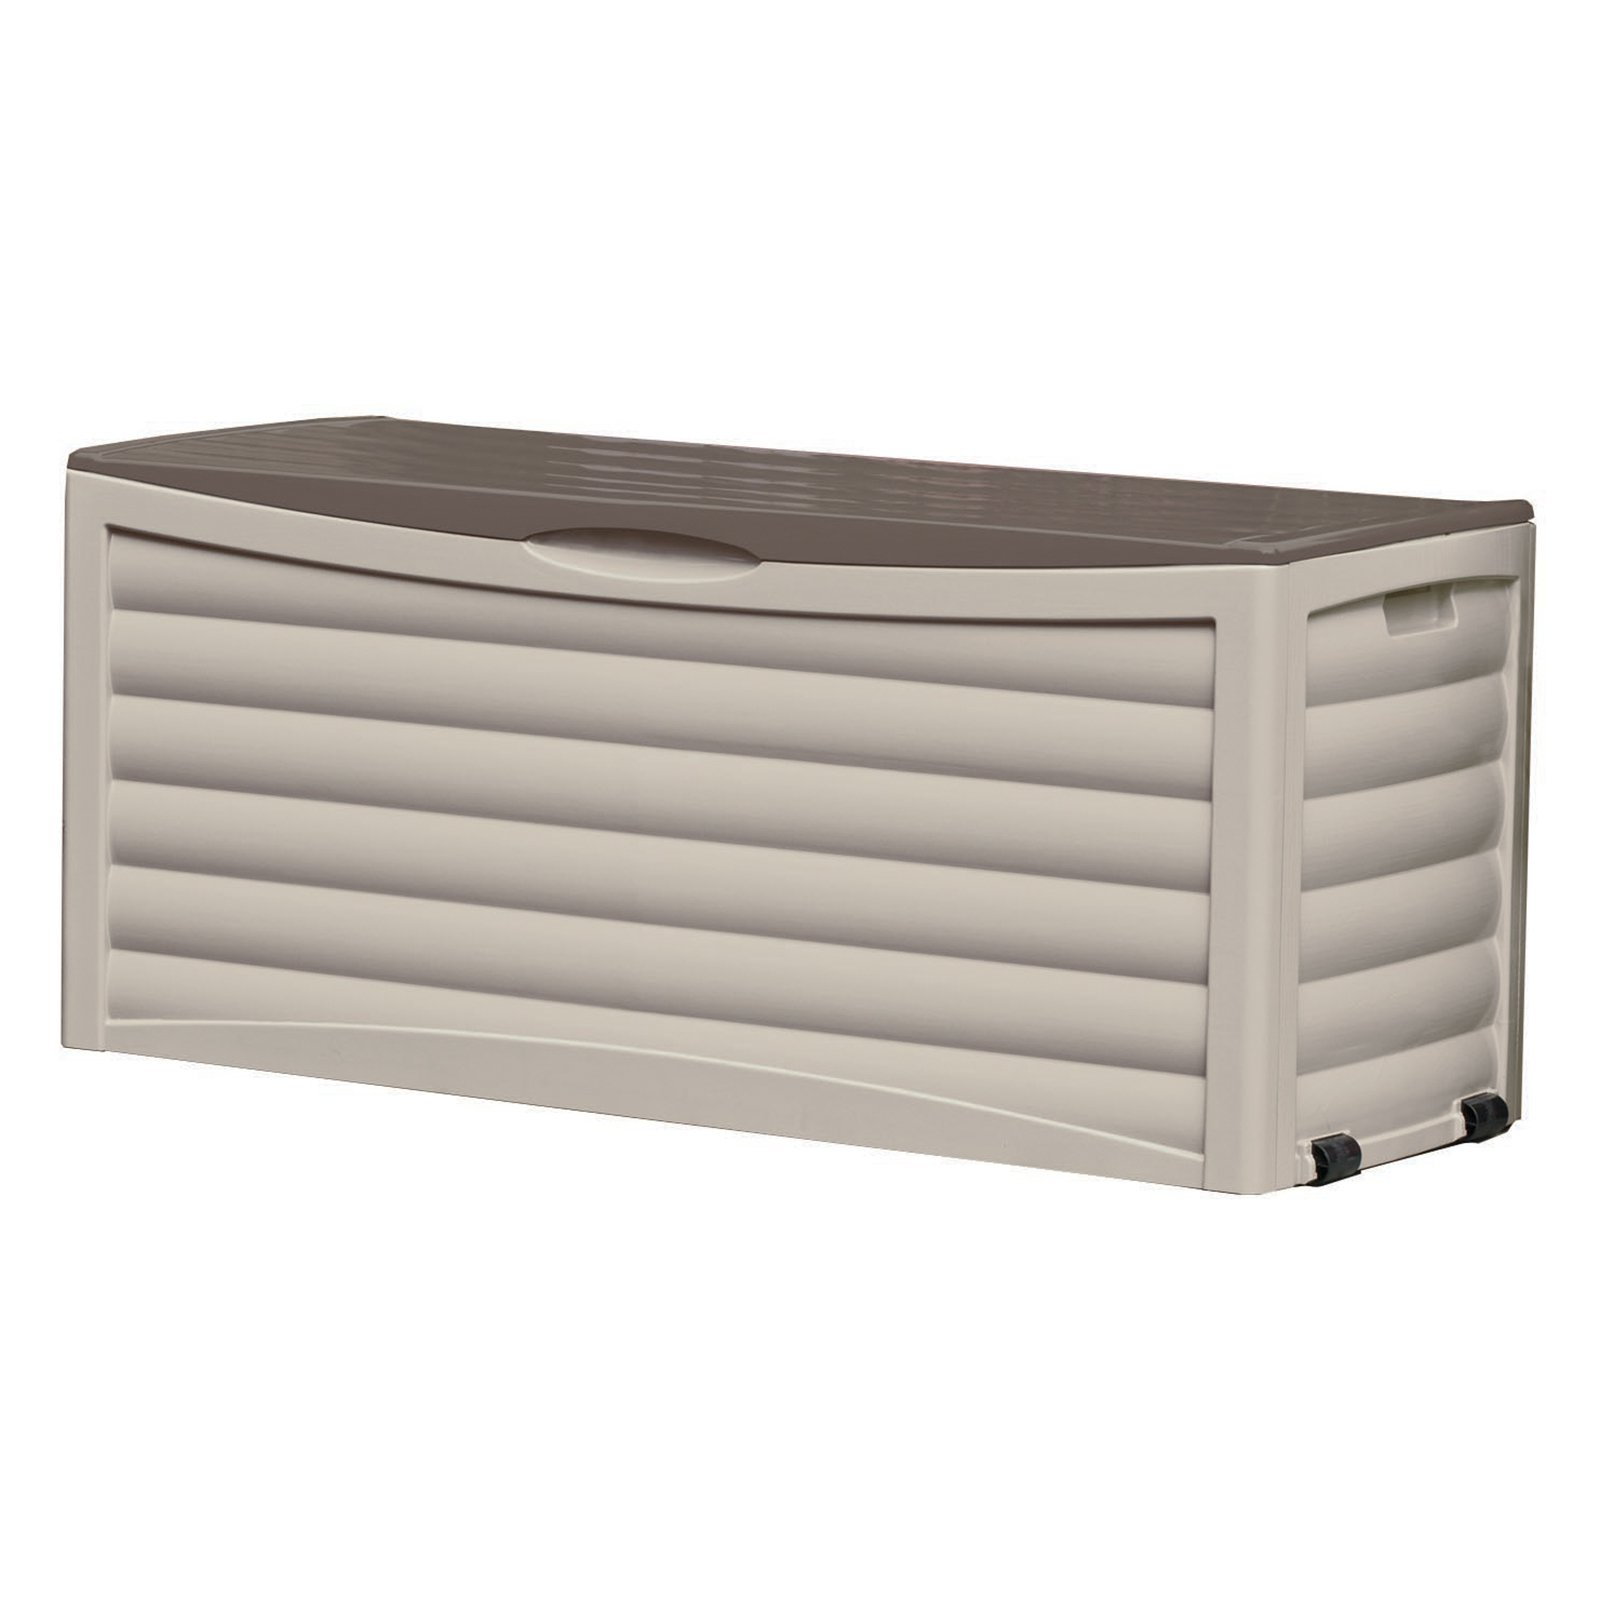 Suncast 103 Gallon Light Taupe Resin Deck Box DB10300 Walmartcom